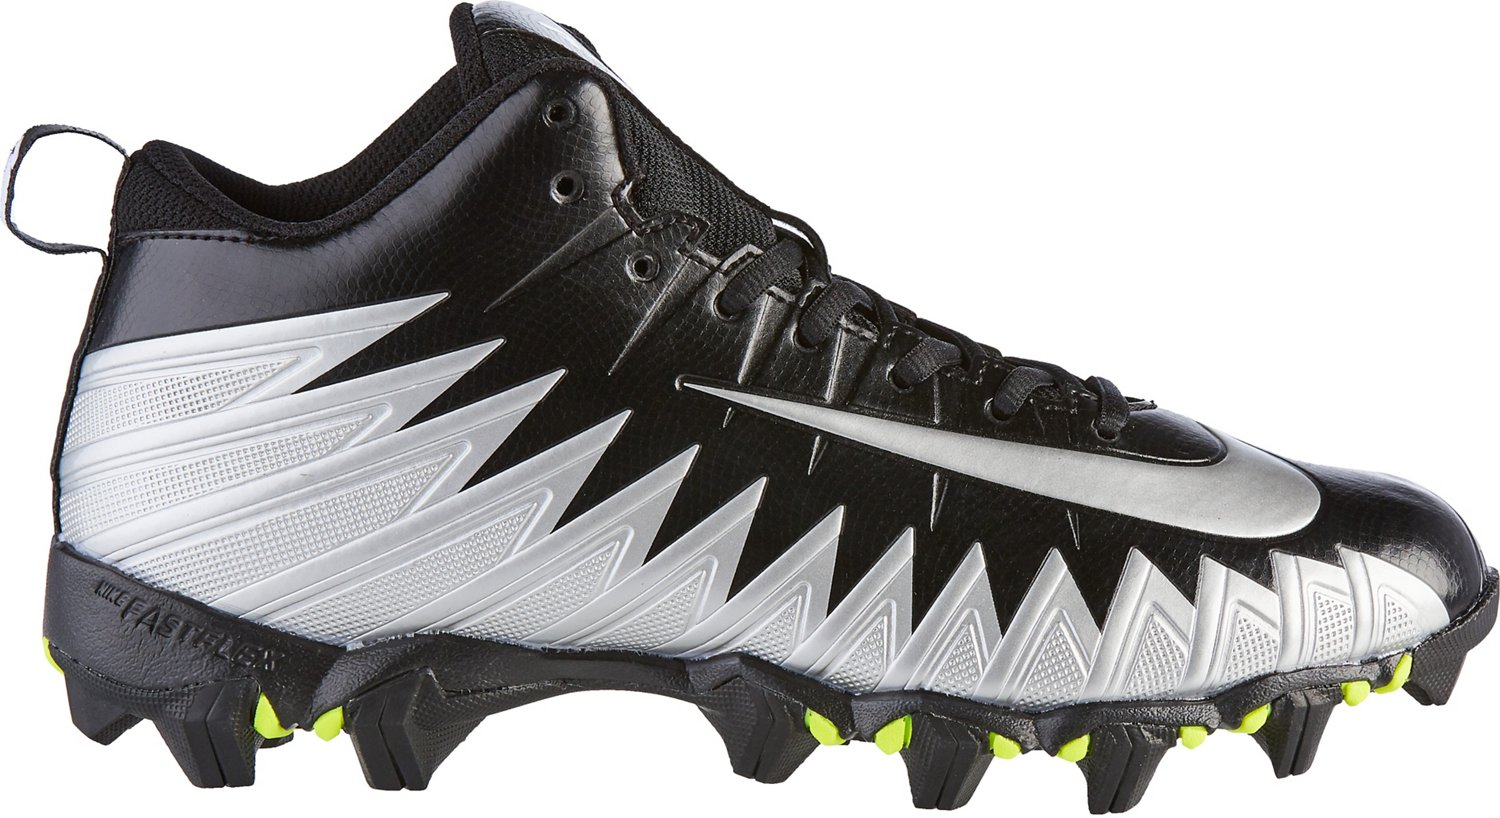 Men's Shark Football Nike 2e CleatsAcademy Menace Wide Alpha 3FTK1Jcl